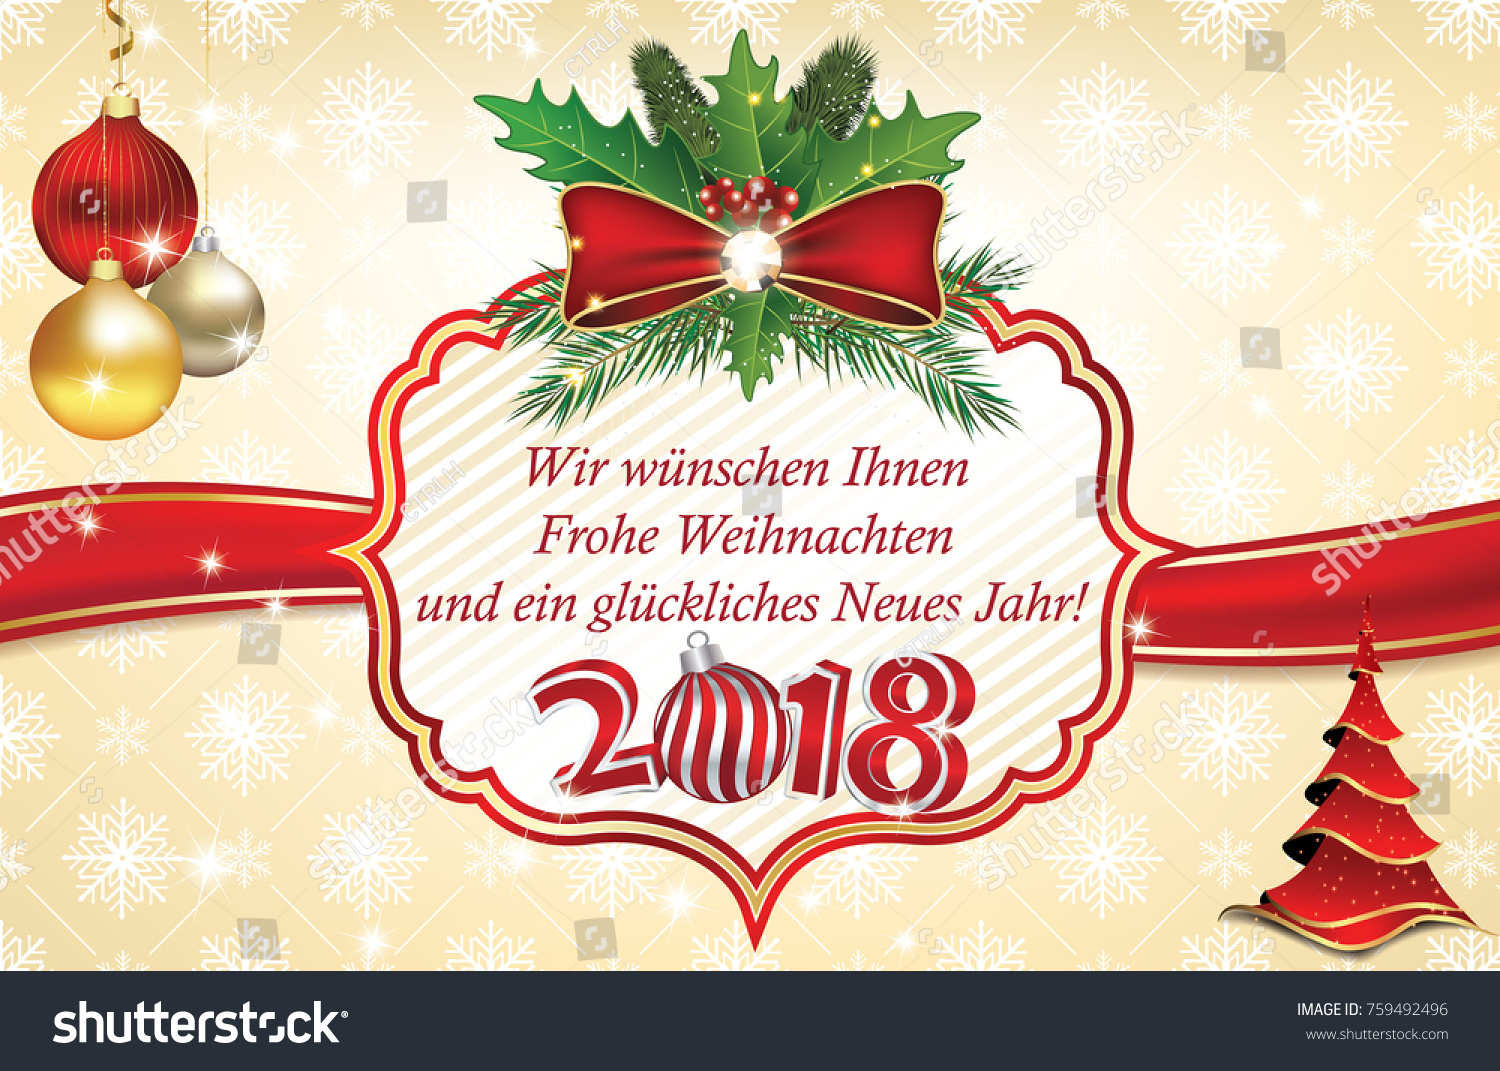 2018 christmas new year greeting card stock illustration 759492496 2018 christmas new year greeting card designed for the german speaking clients text translation m4hsunfo